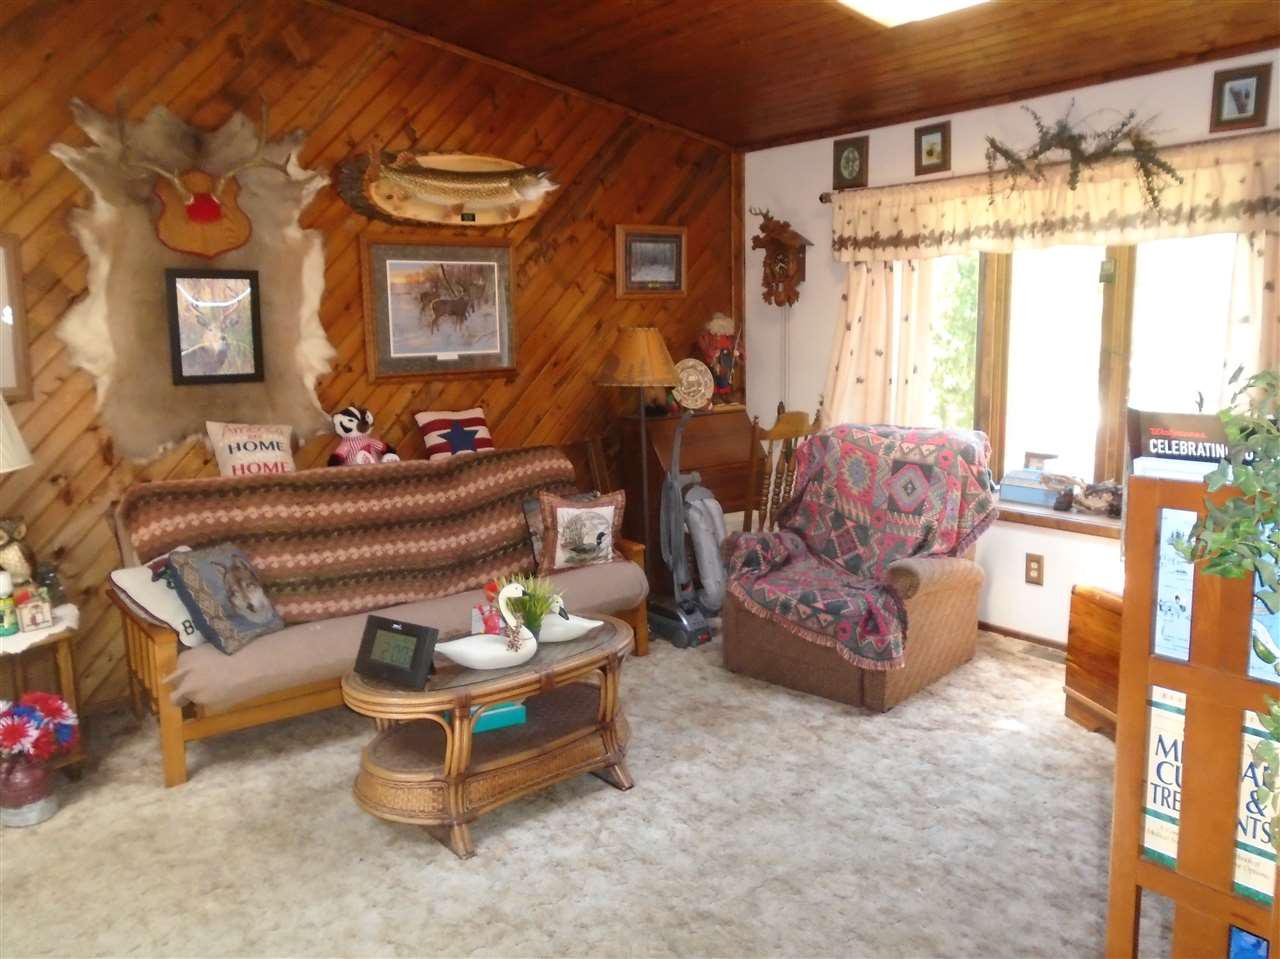 "Lovely rural setting. Resting on two adjoining lots, you will find this immaculate and well cared for home. This 16x80 3 BDRM 2 BA manufactured home offers nearly 1600 finished square feet including a beautiful family room addition. Sale includes all appliances and most furnishings. Factor in not 1 but 2 garages for all your toys, a paved horse shoe driveway, as well as a ""park like"" manicured lot and you will see a property in absolutely move in condition. Bonus-also includes a nice screened room."